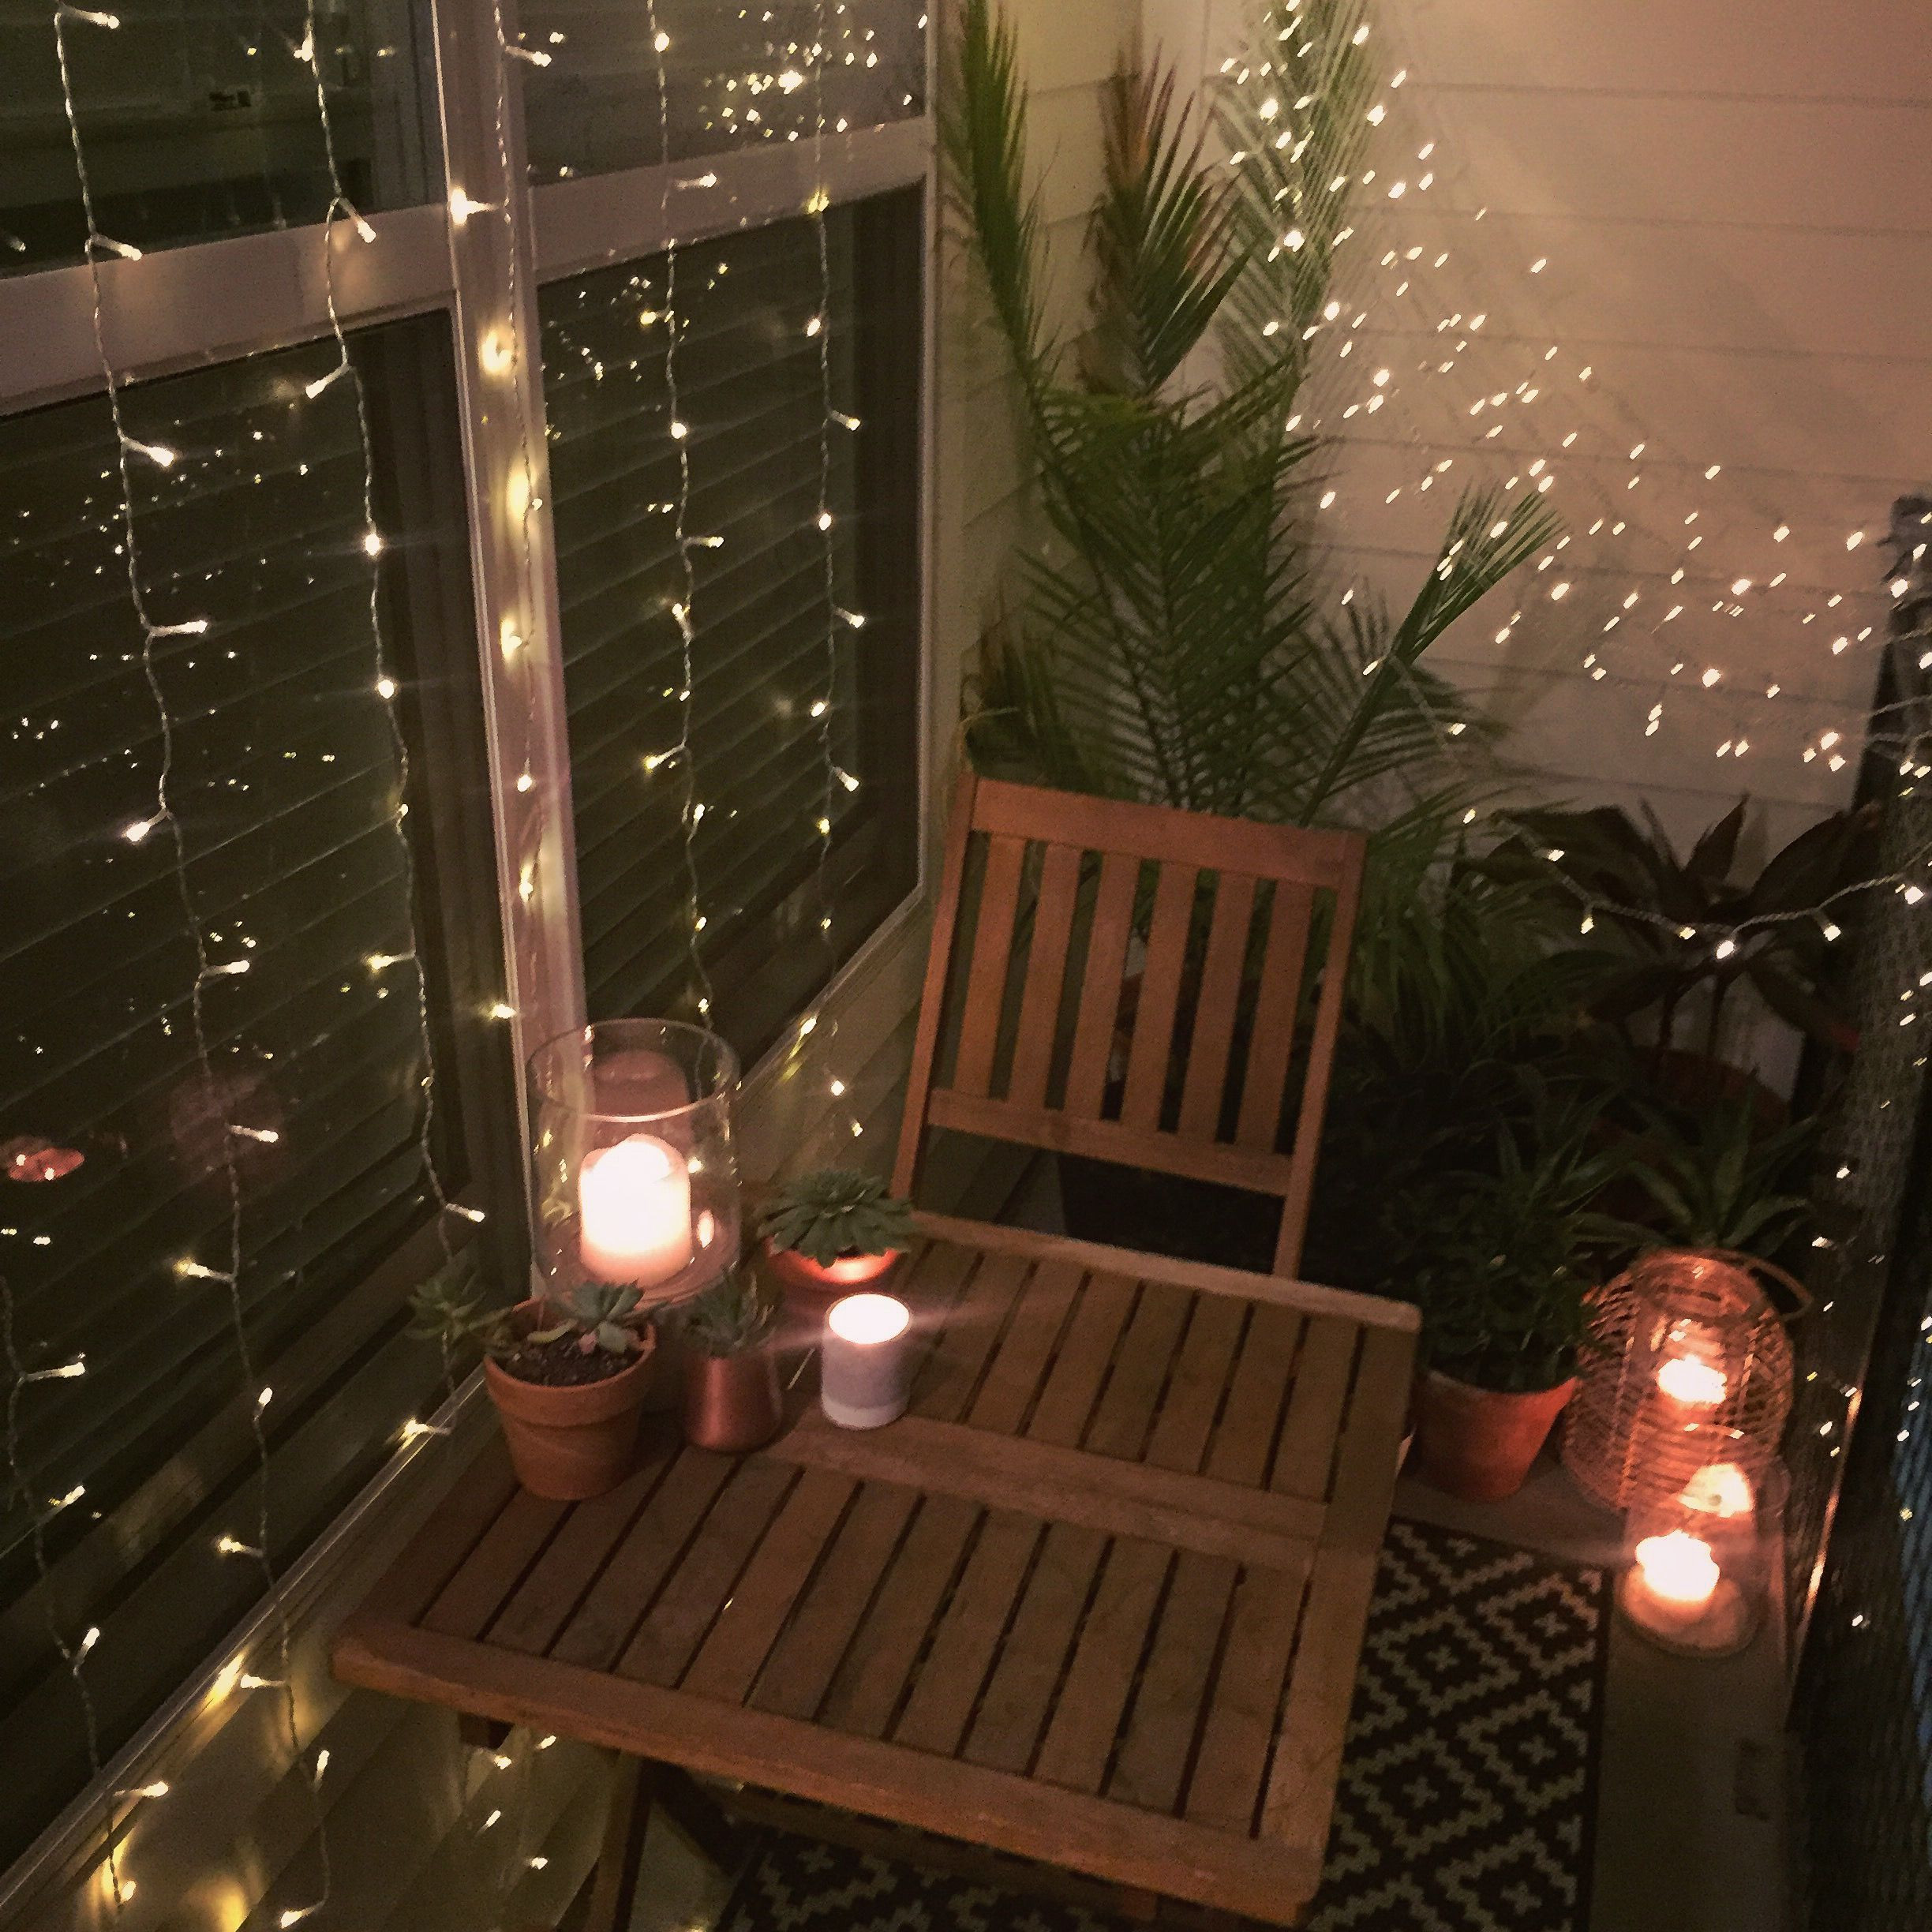 Apartment Balcony Christmas Lights  Small balcony decor ideas for an apartment Hanging string